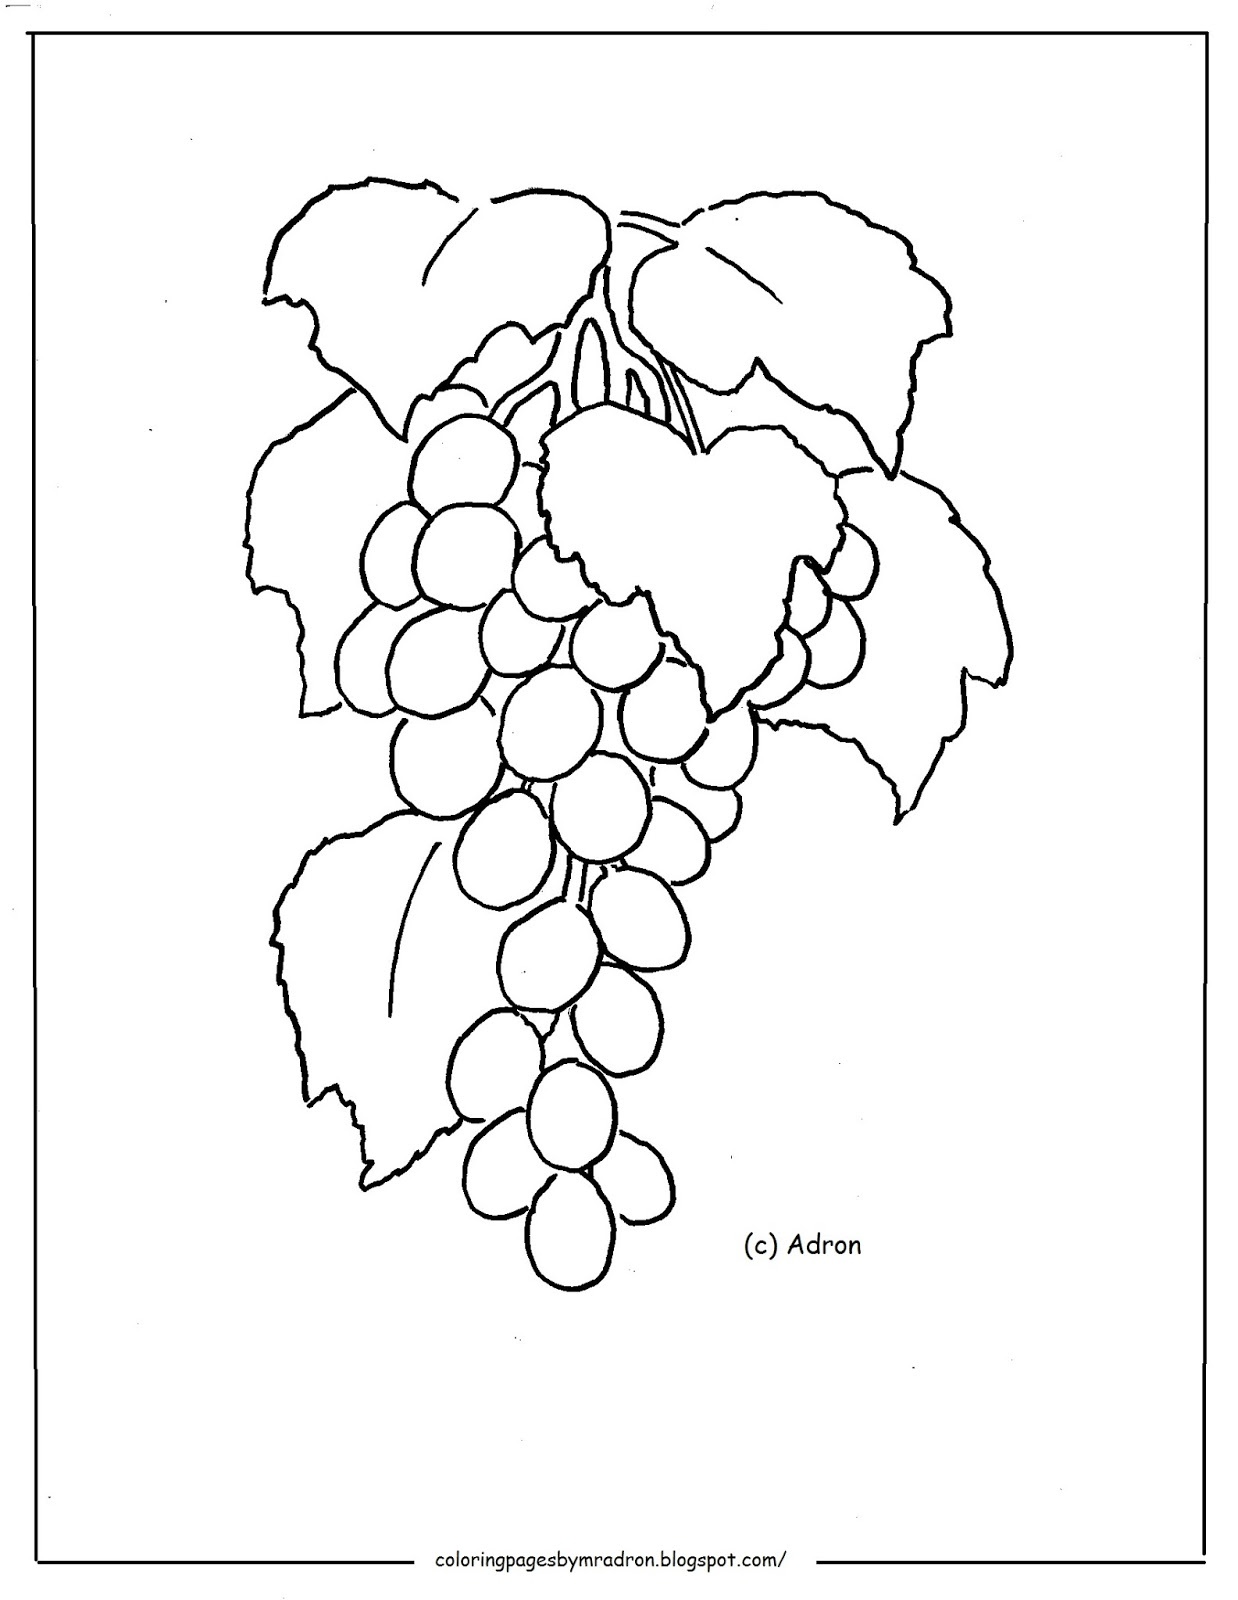 Grapes Coloring Pages Free Grapes Coloring Pagefree